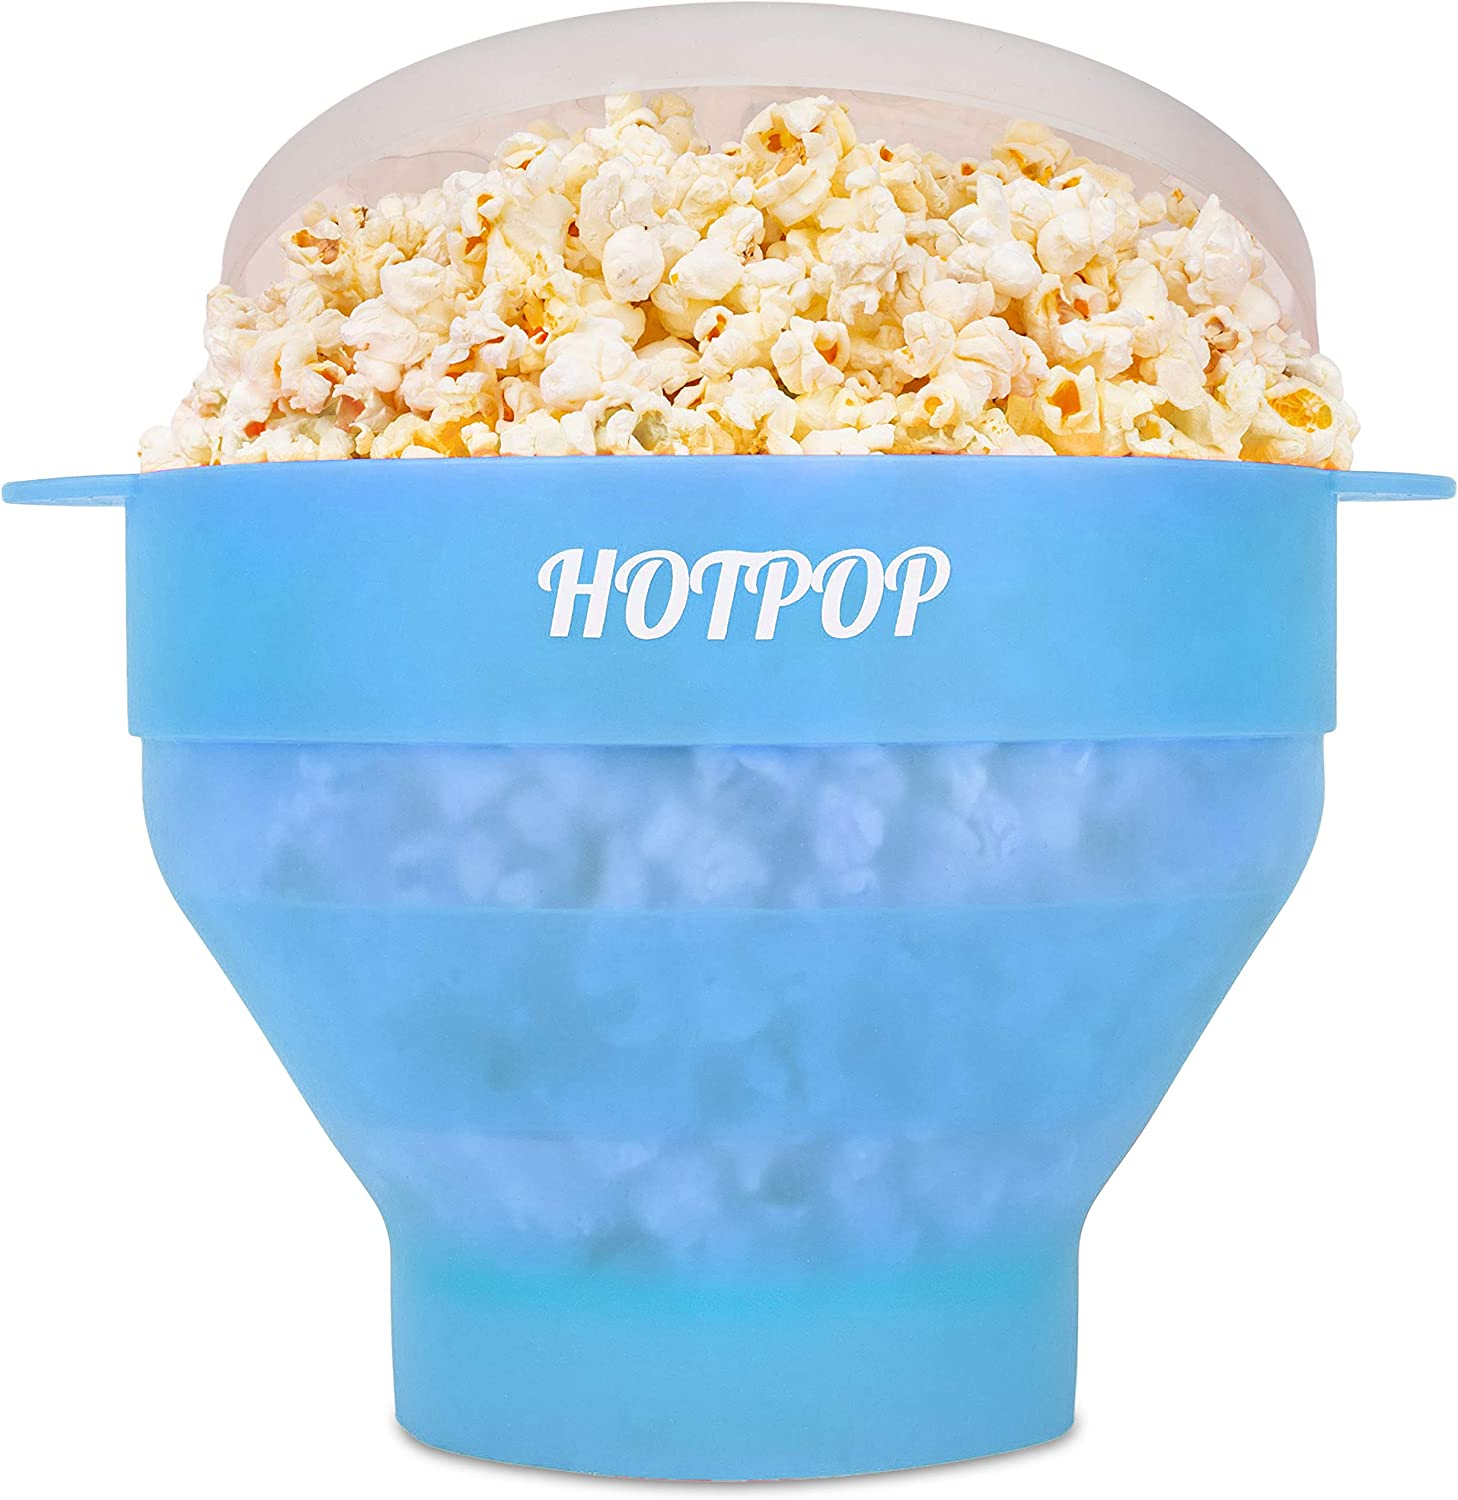 The Original Hotpop Microwave Popcorn Popper, Silicone Popcorn Maker, Collapsible Bowl Bpa Free and Dishwasher Safe - 17 Colors Available (Transparent Fresh Mint)